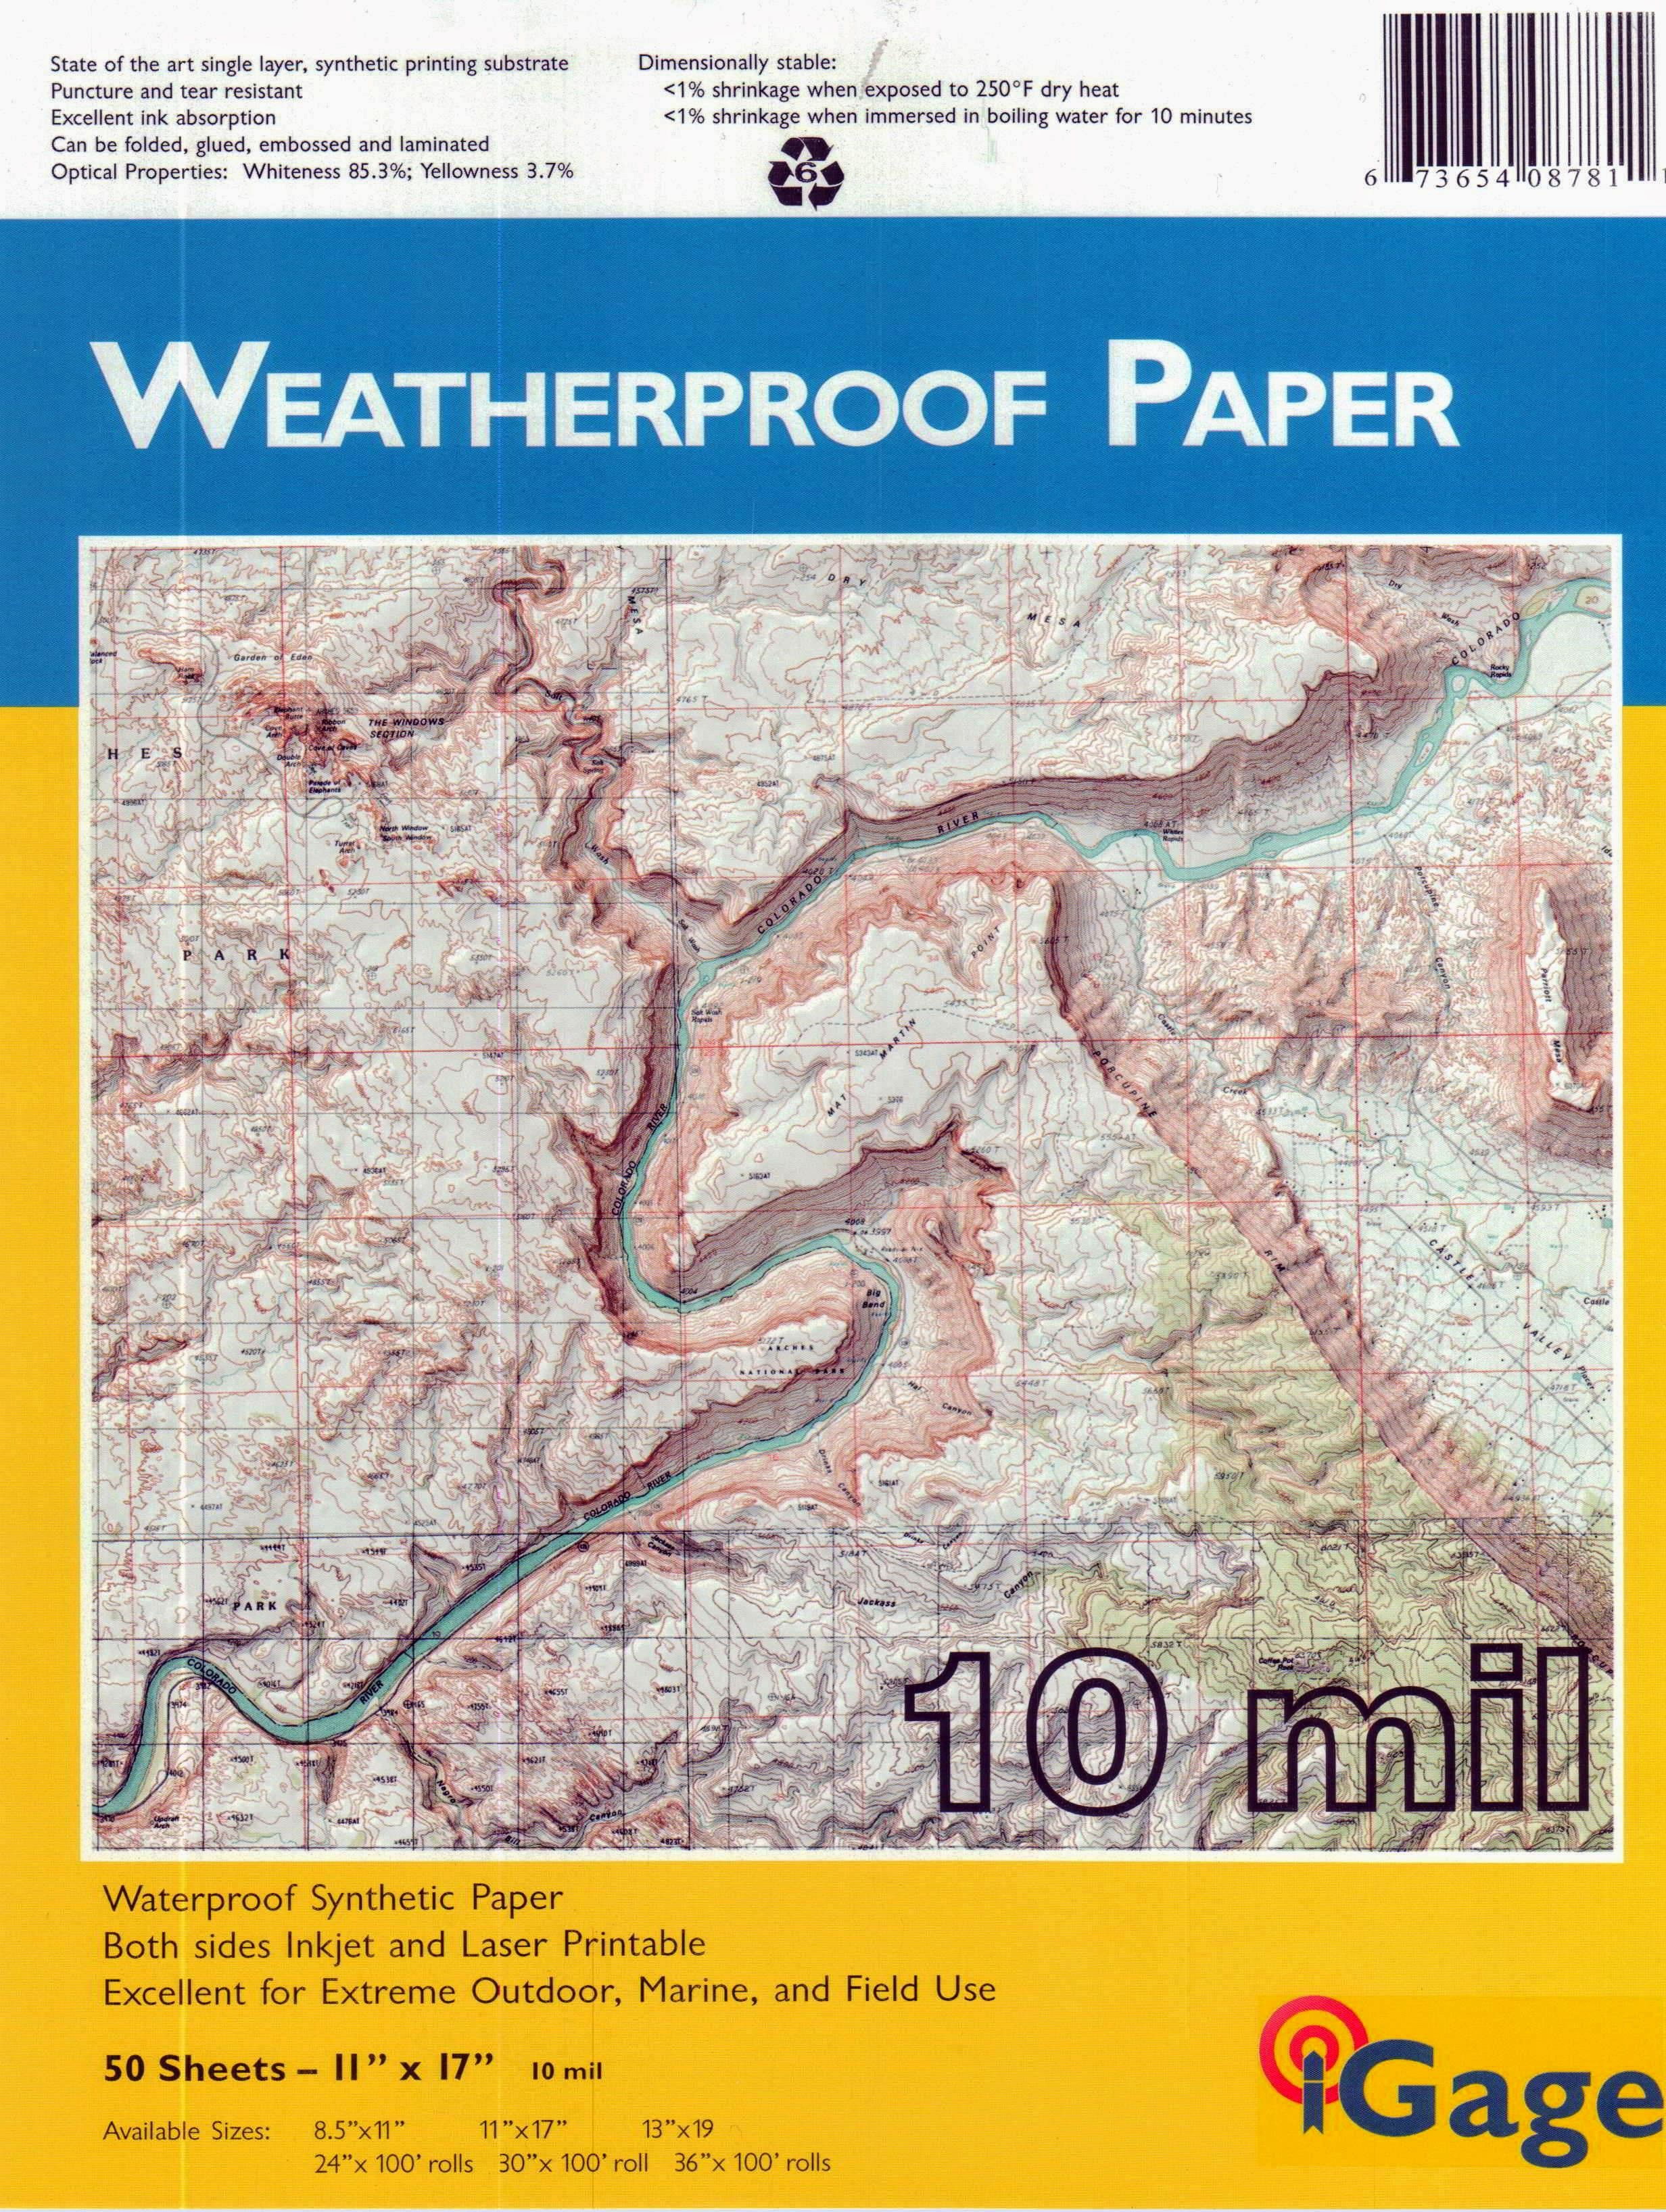 "iGage All-Weather Paper Laser/Inkjet 11"" x 17"" 500 sheets"